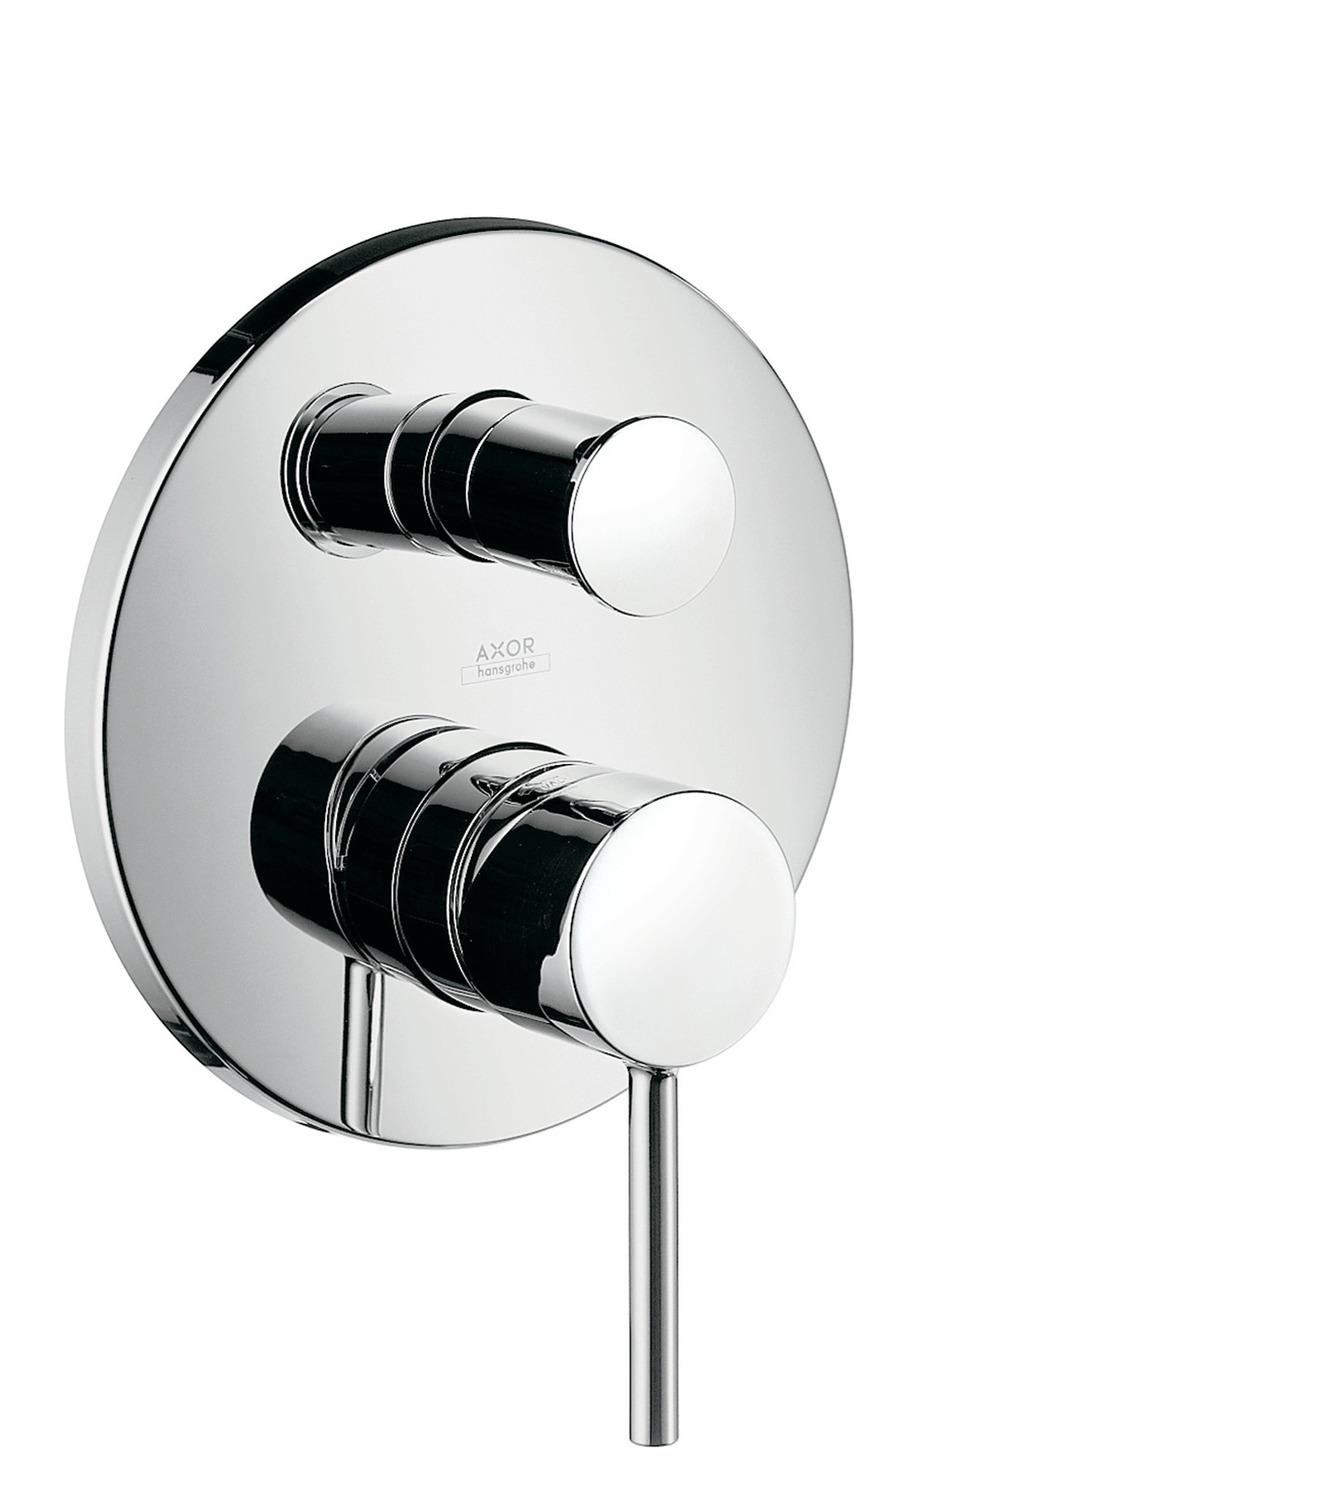 Chrome Single lever bath mixer for concealed installation with pin handle and integrated security combination according to EN1717